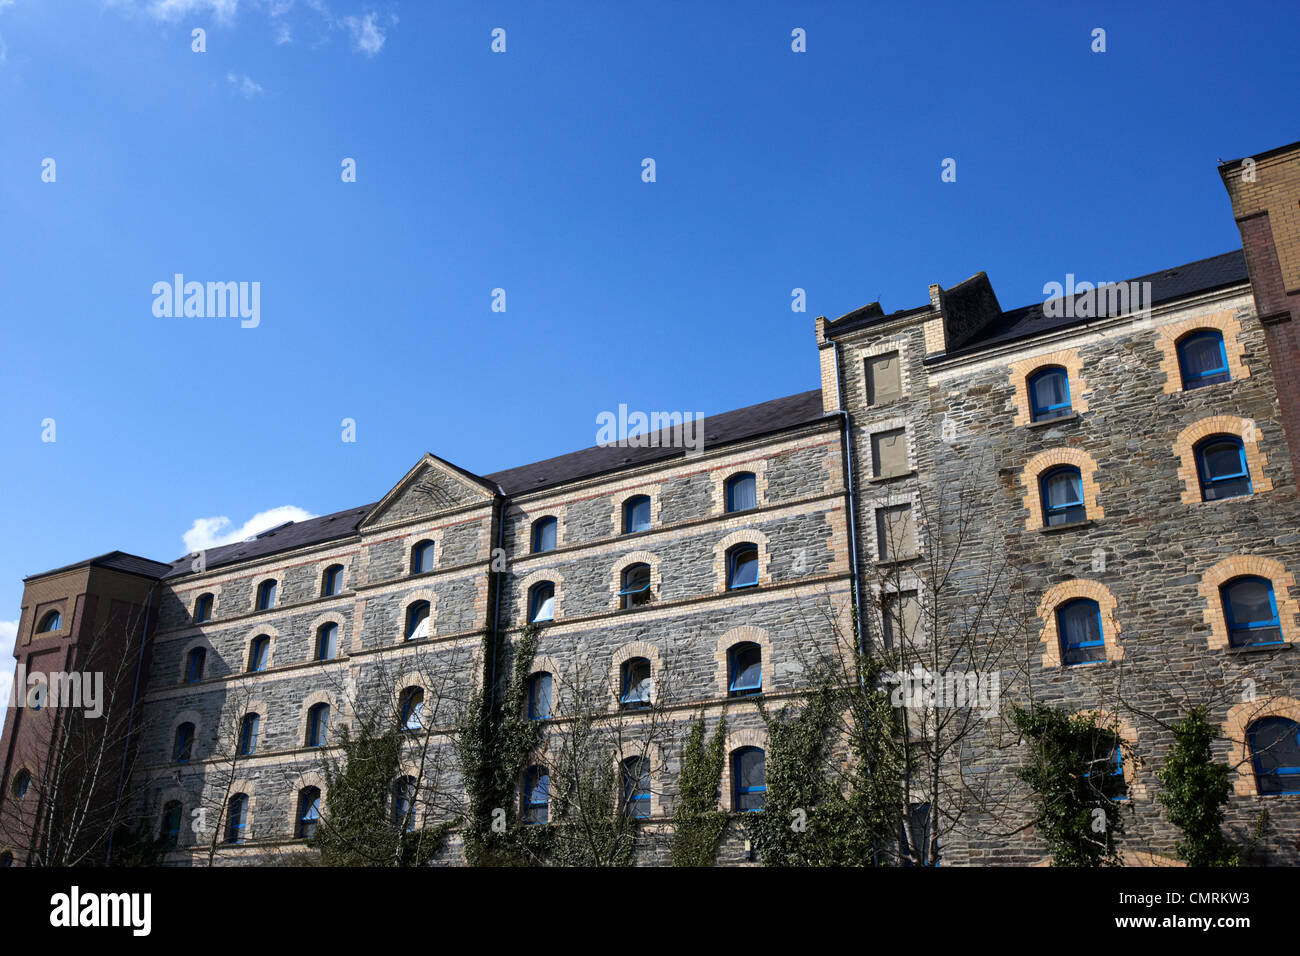 rock mills former flour mills building converted to student accommodation use in Derry city county londonderry northern - Stock Image